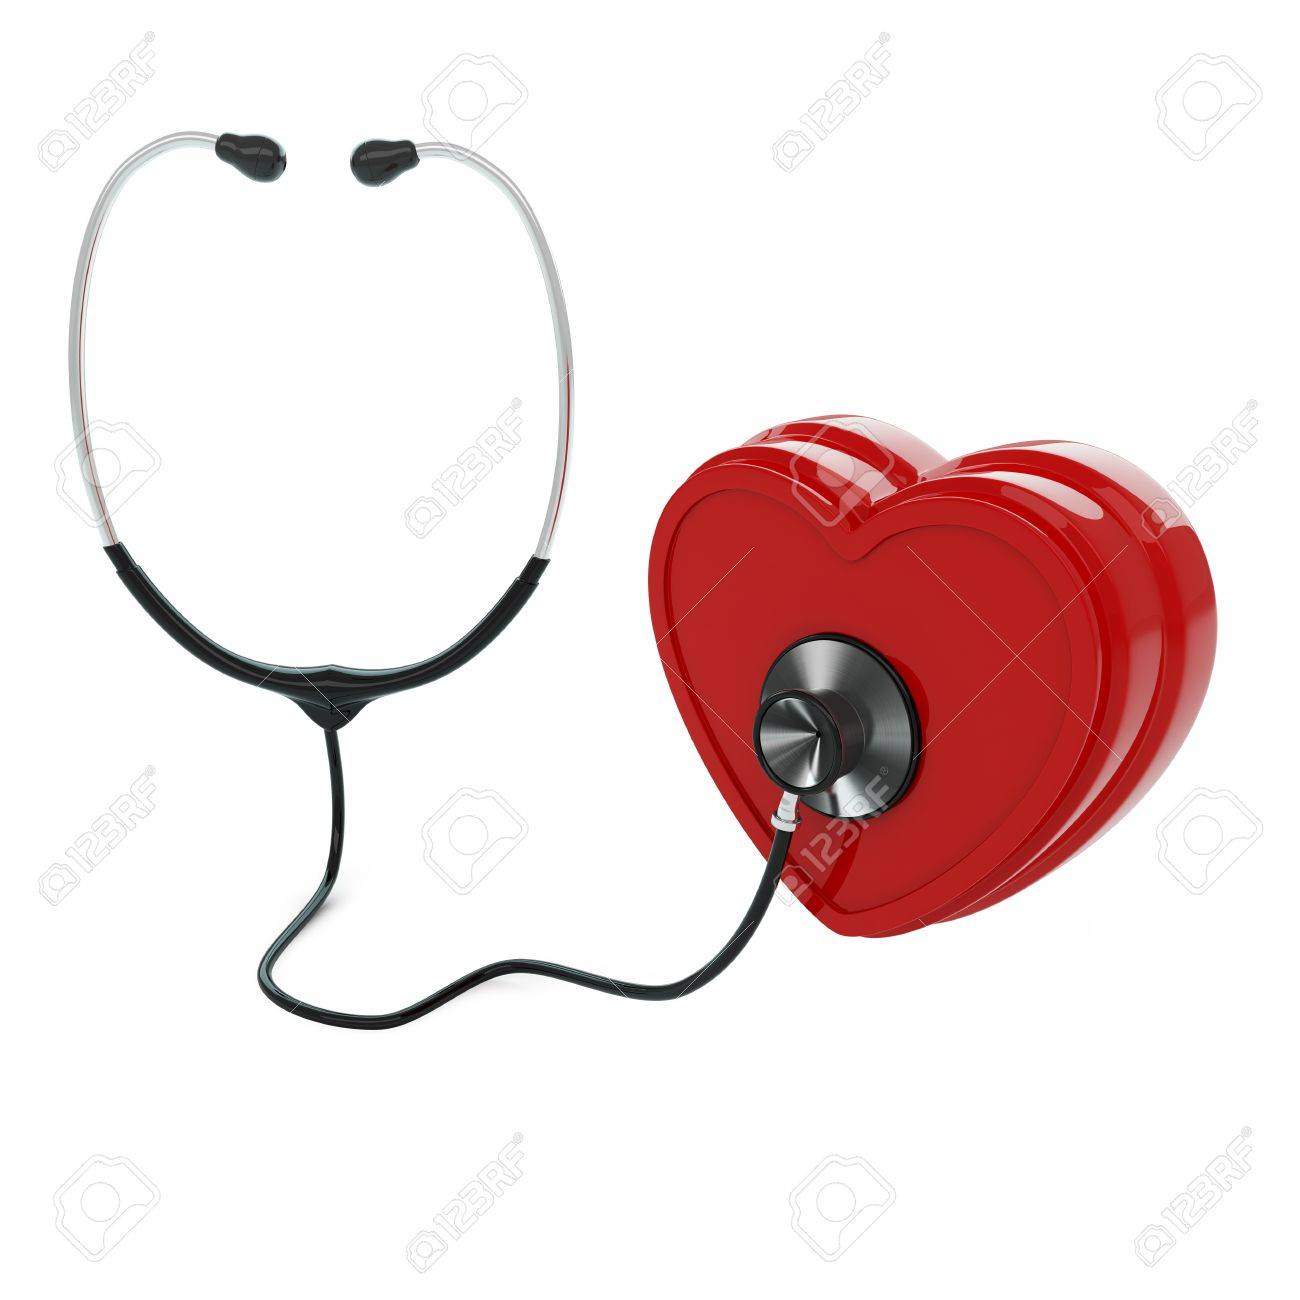 Isolated stethoscope examing heart on white background Stock Photo - 17697174